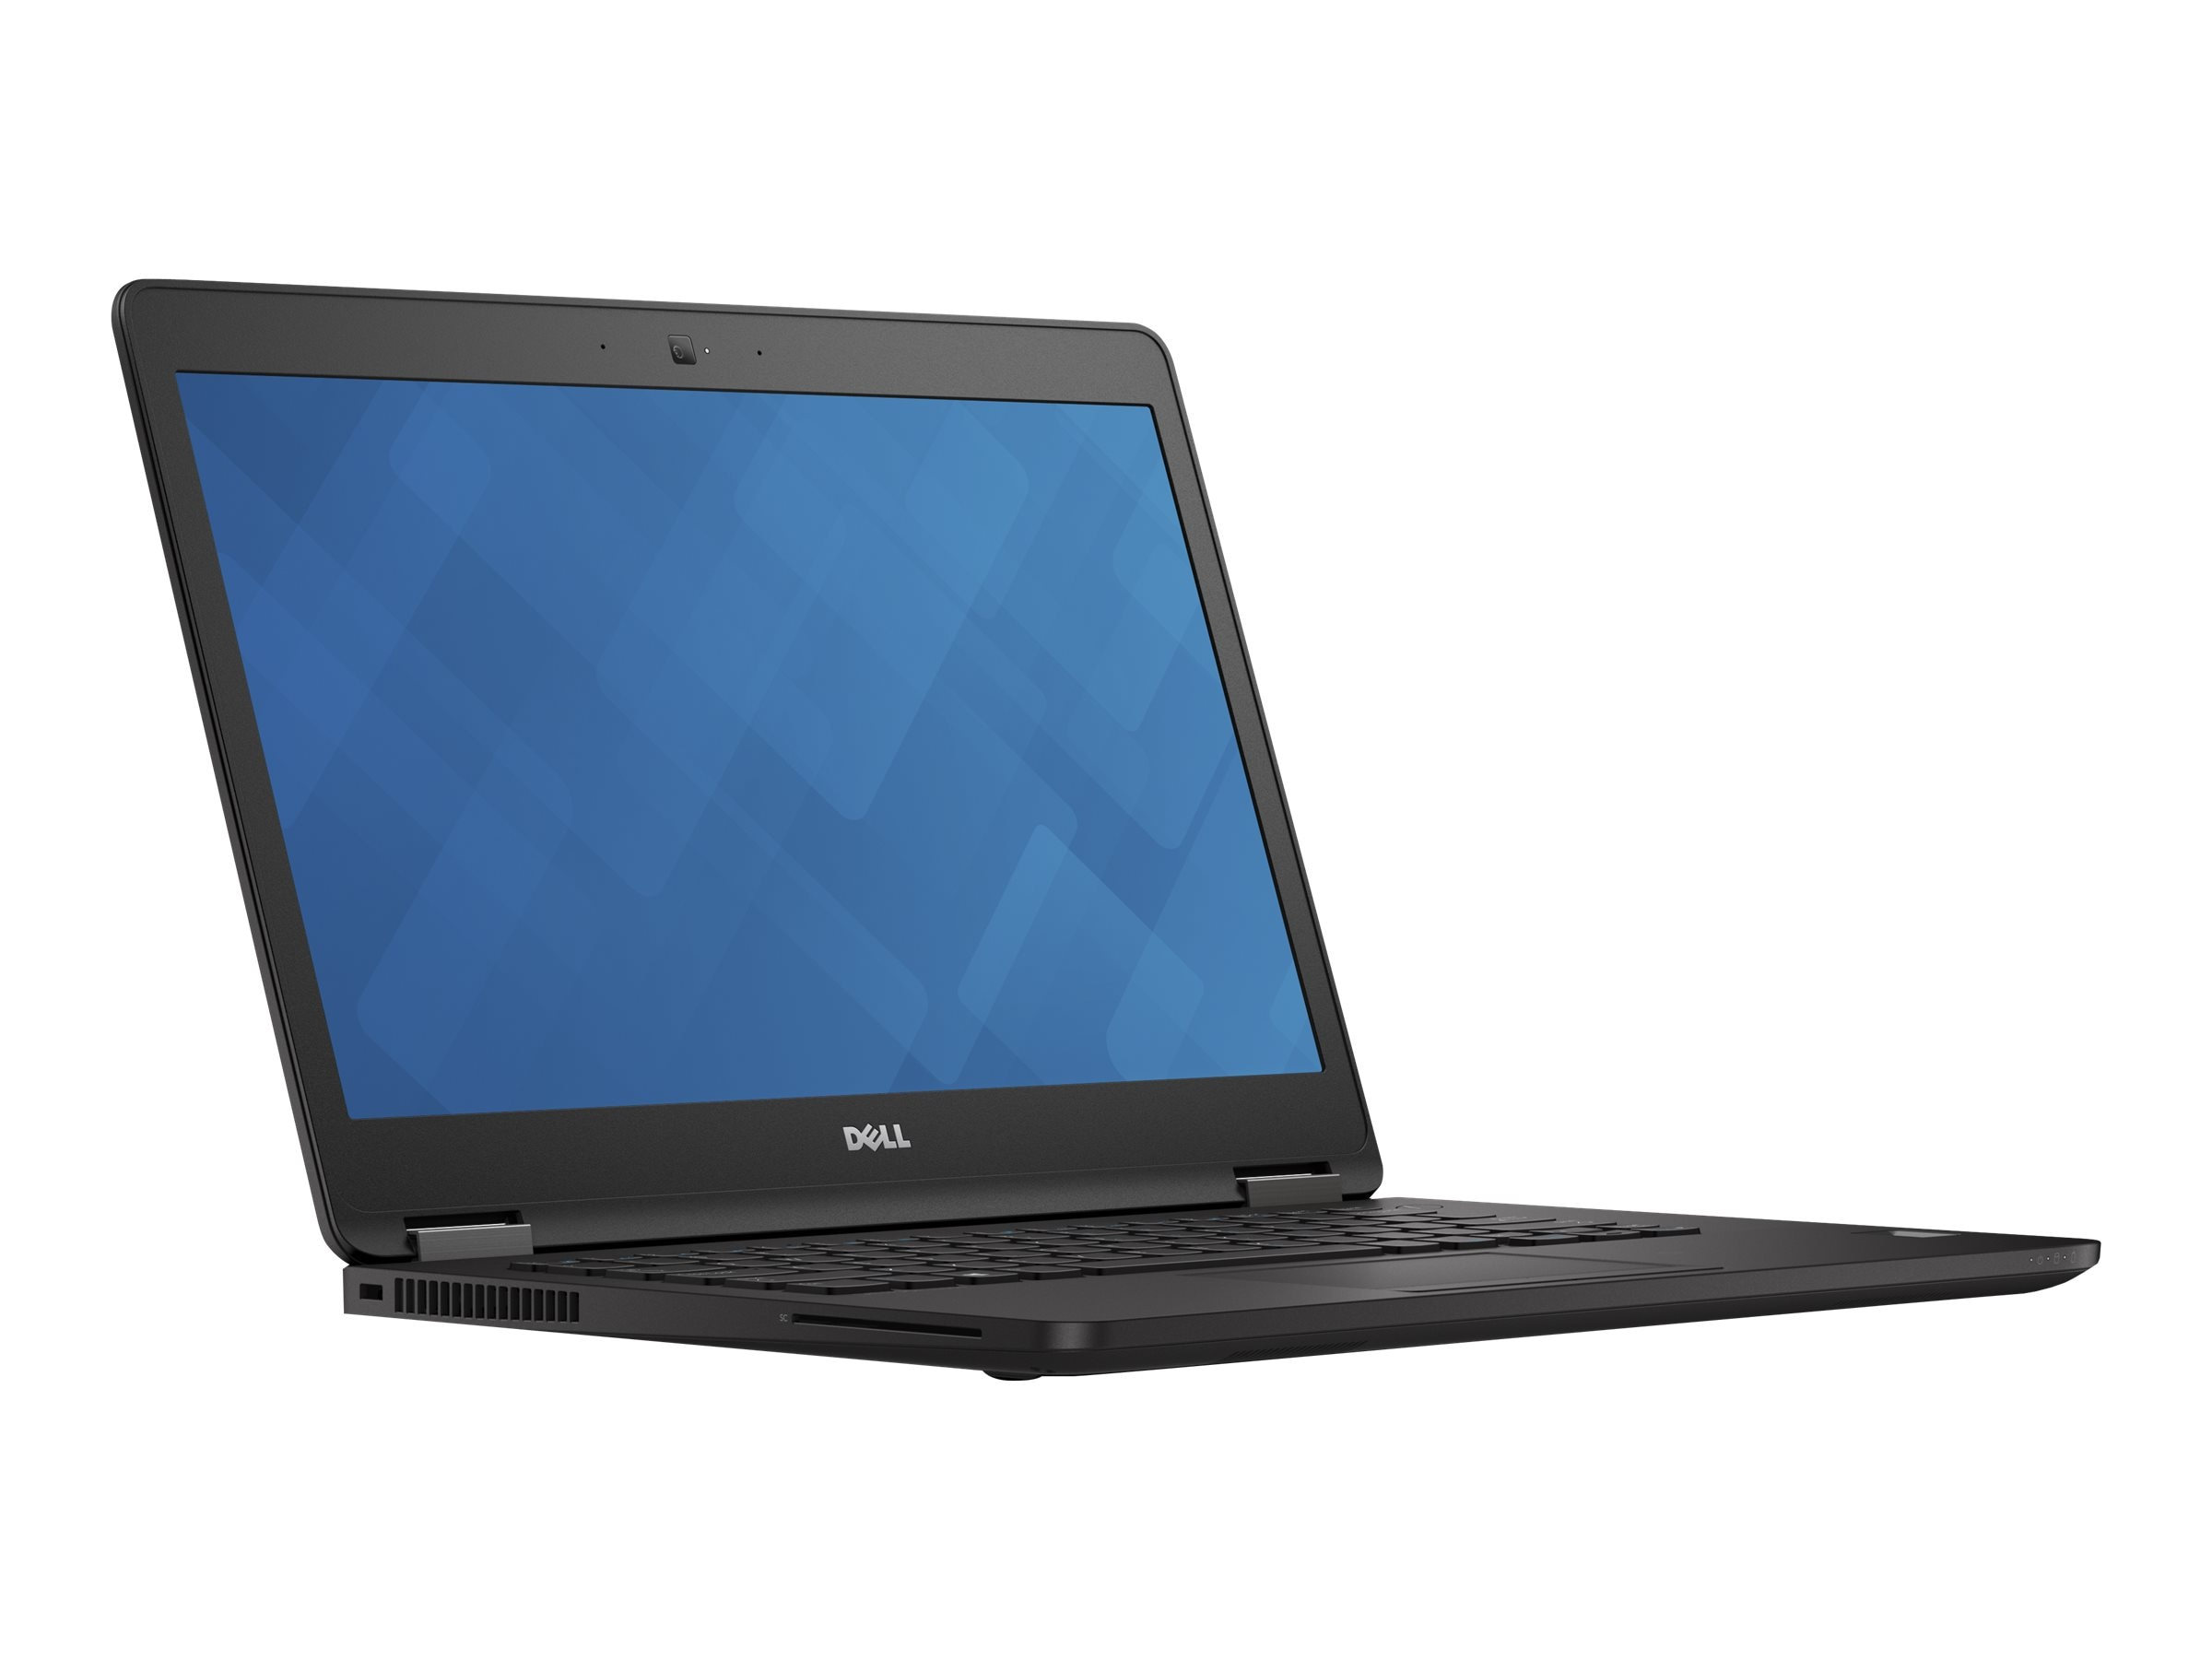 Dell Latitude E7470 Core i7-6600U 2.6GHz 8GB 256GB SSD ac BT WC 4C 14 FHD W10P64